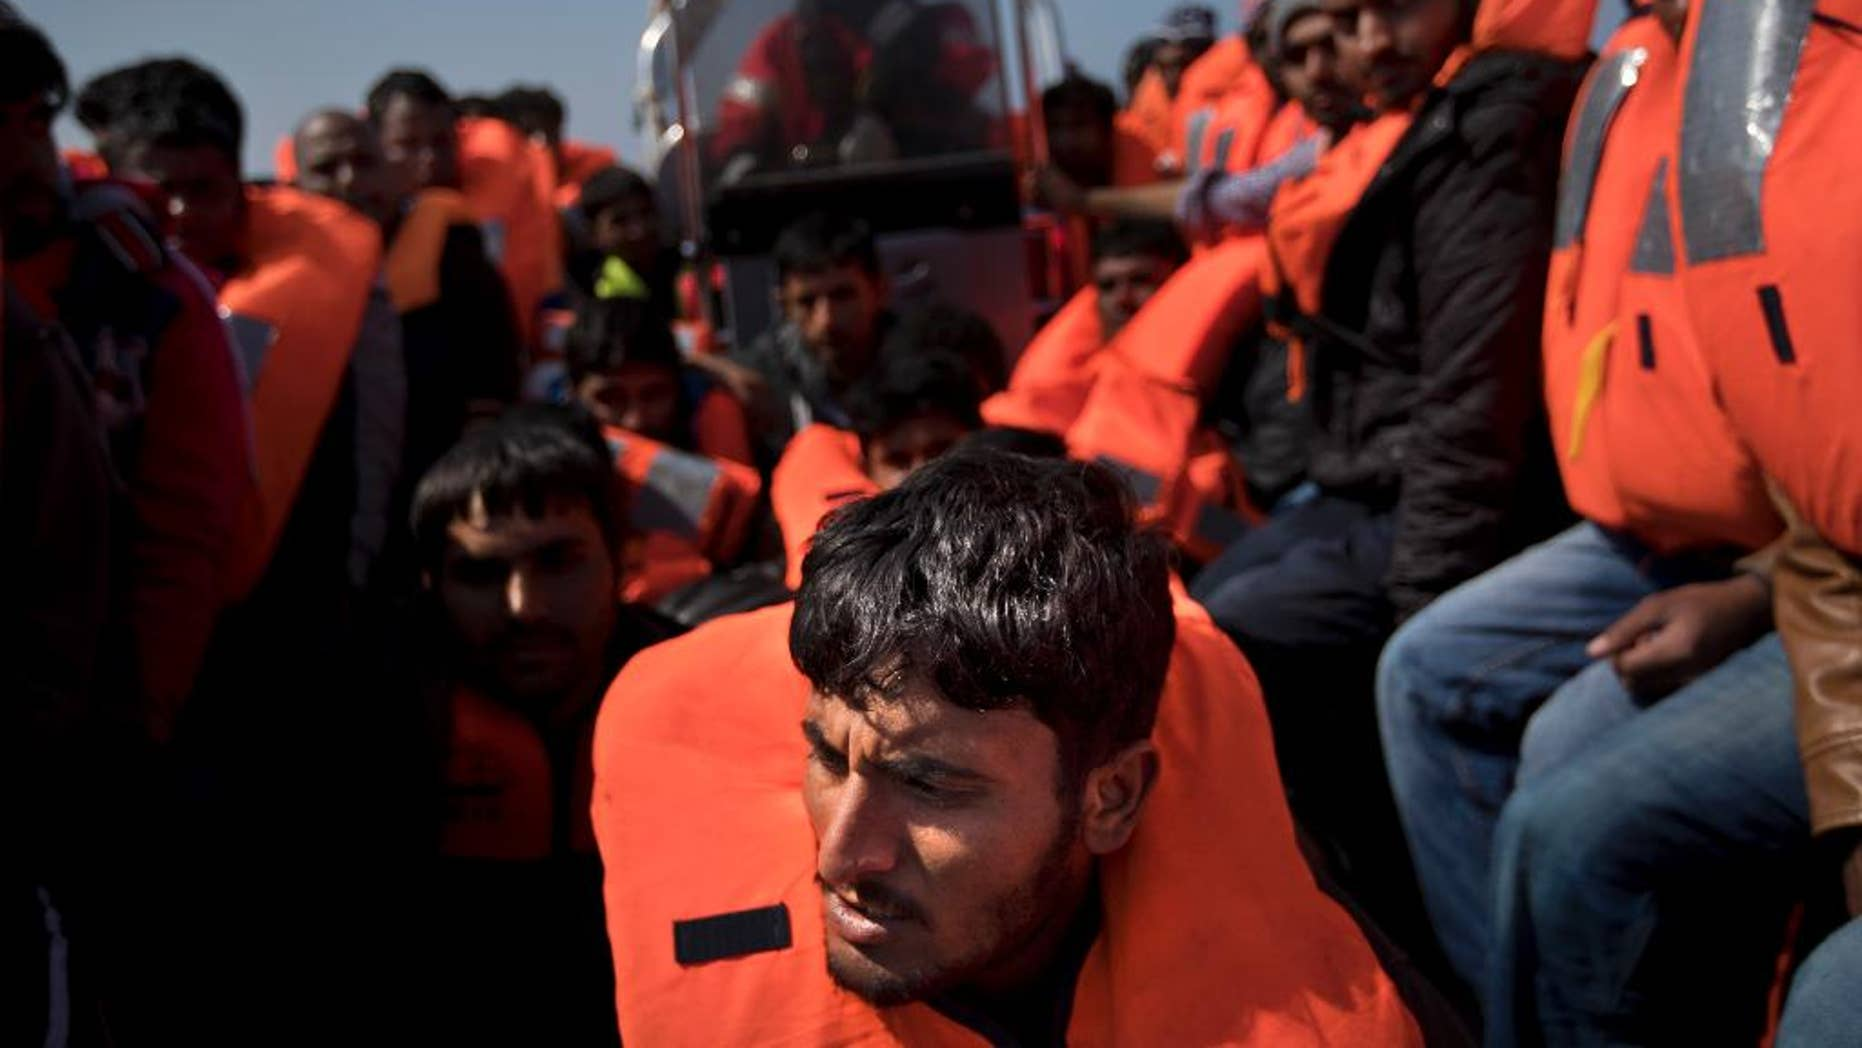 In this April 6, 2017 file photo, migrants are rescued from a rubber boat by members of Proactiva Open Arms NGO, in the Mediterranean sea, about 56 miles north of Sabratha, Libya. With the Greek smuggling route largely closed off, the path of least resistance drifted to Libya _ a sprawling lawless country with a huge coast and competing rebel and government factions. Migrants have flooded into Libya from across Africa, producing a bonanza for smugglers. (AP Photo/Bernat Armangue, File)